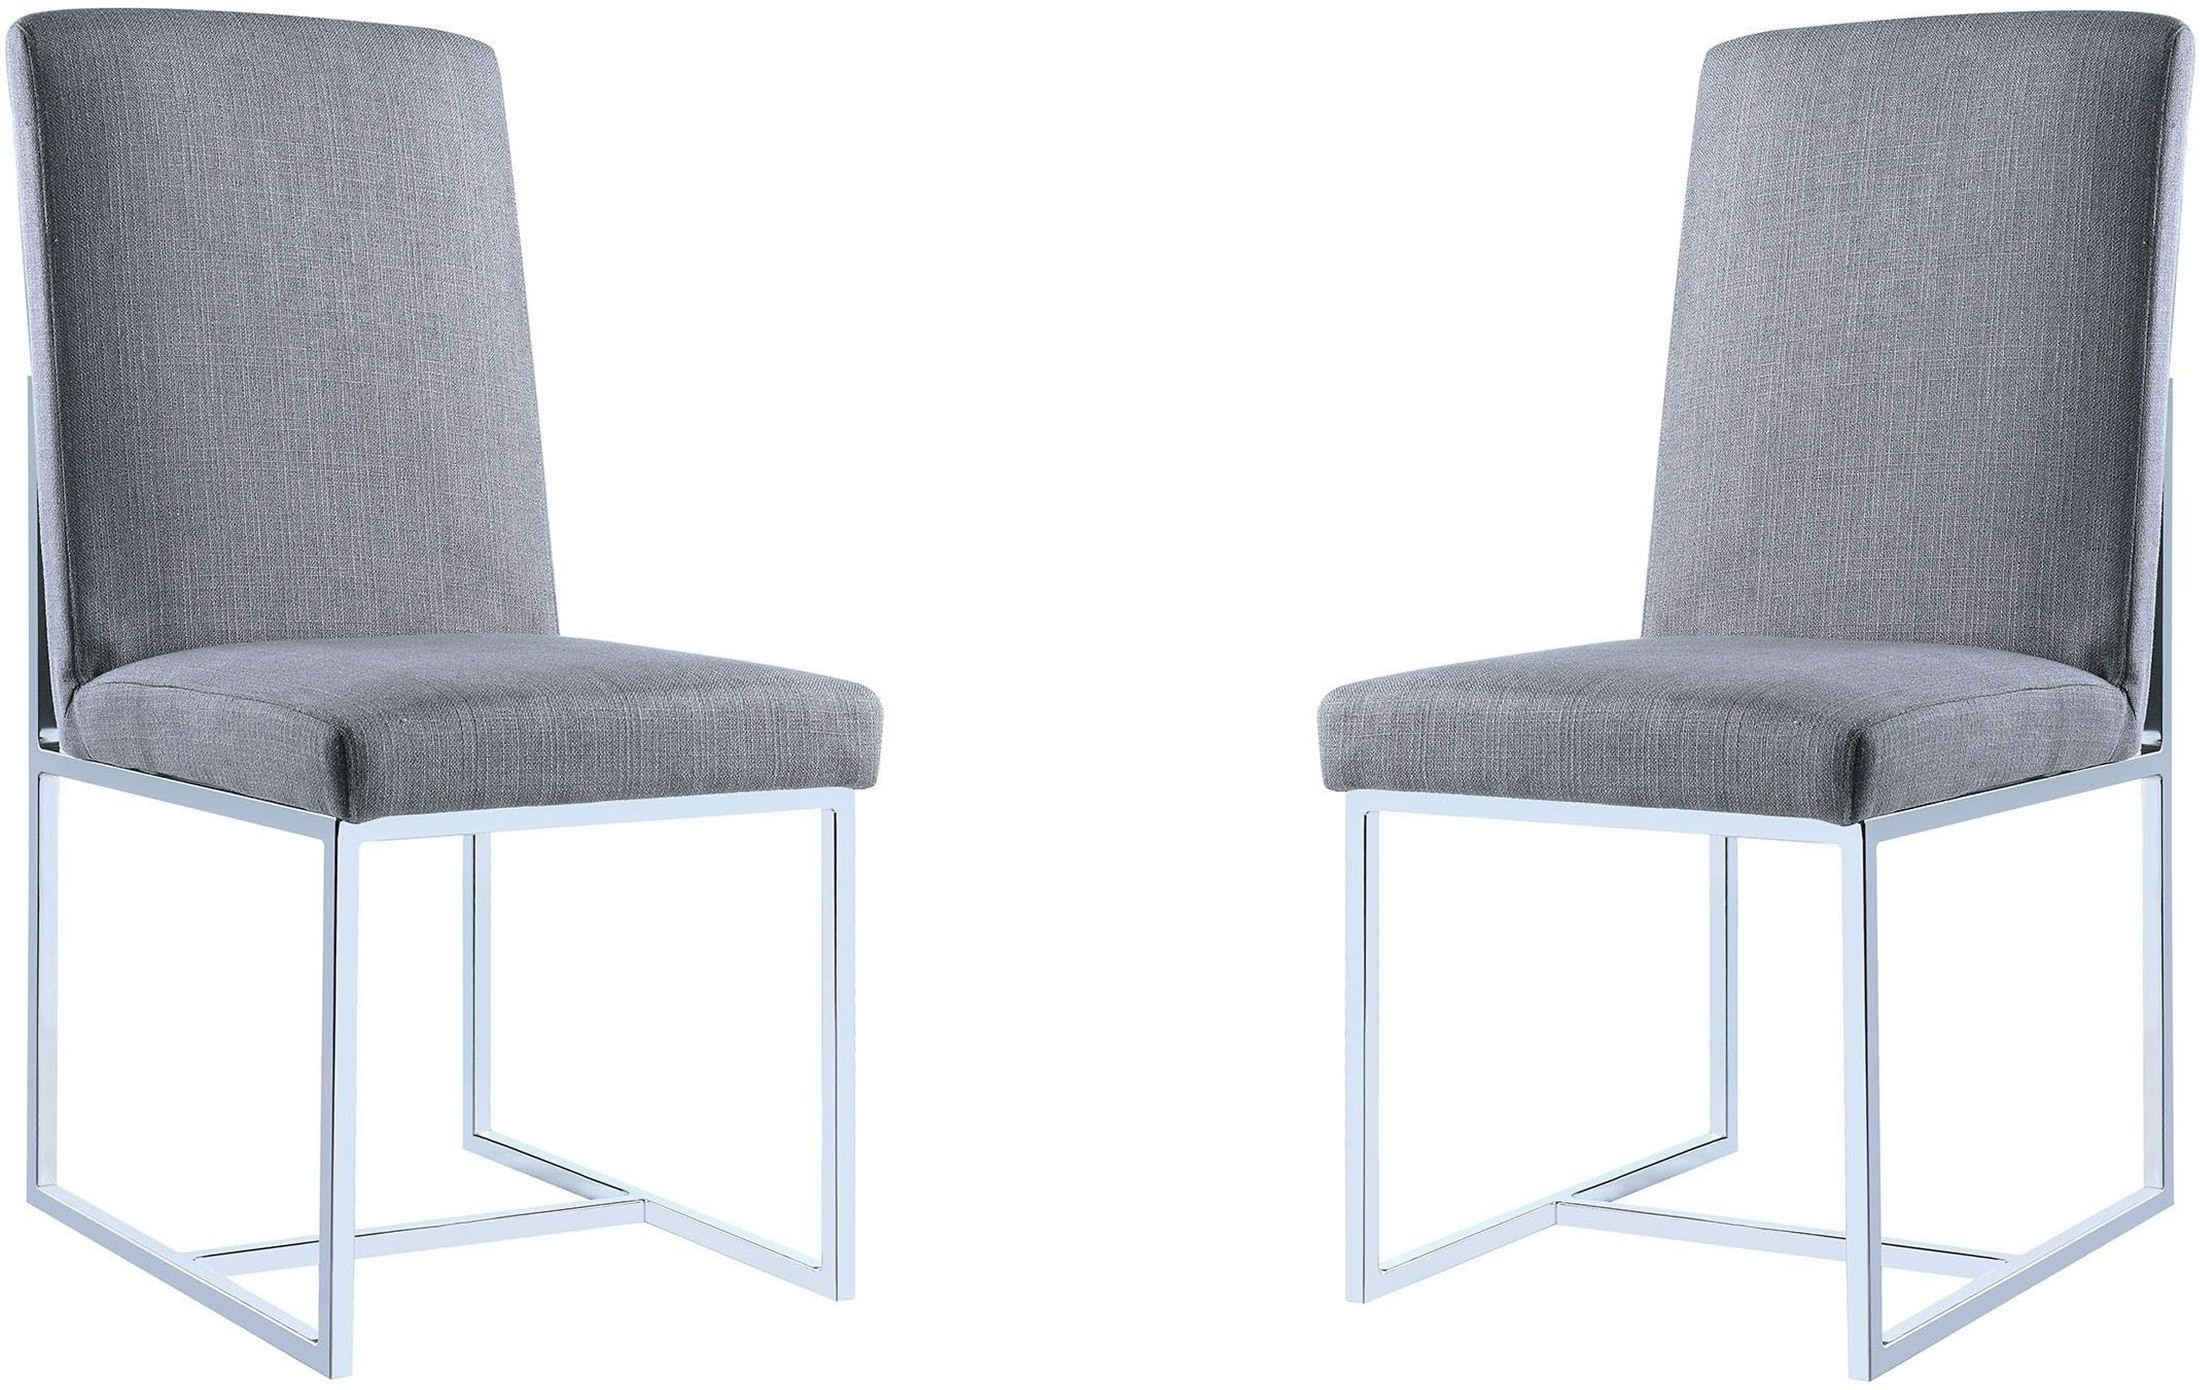 City Chic Grey Dining Chair By Donny Osmond Set Of 2 From Coaster Coleman Furniture